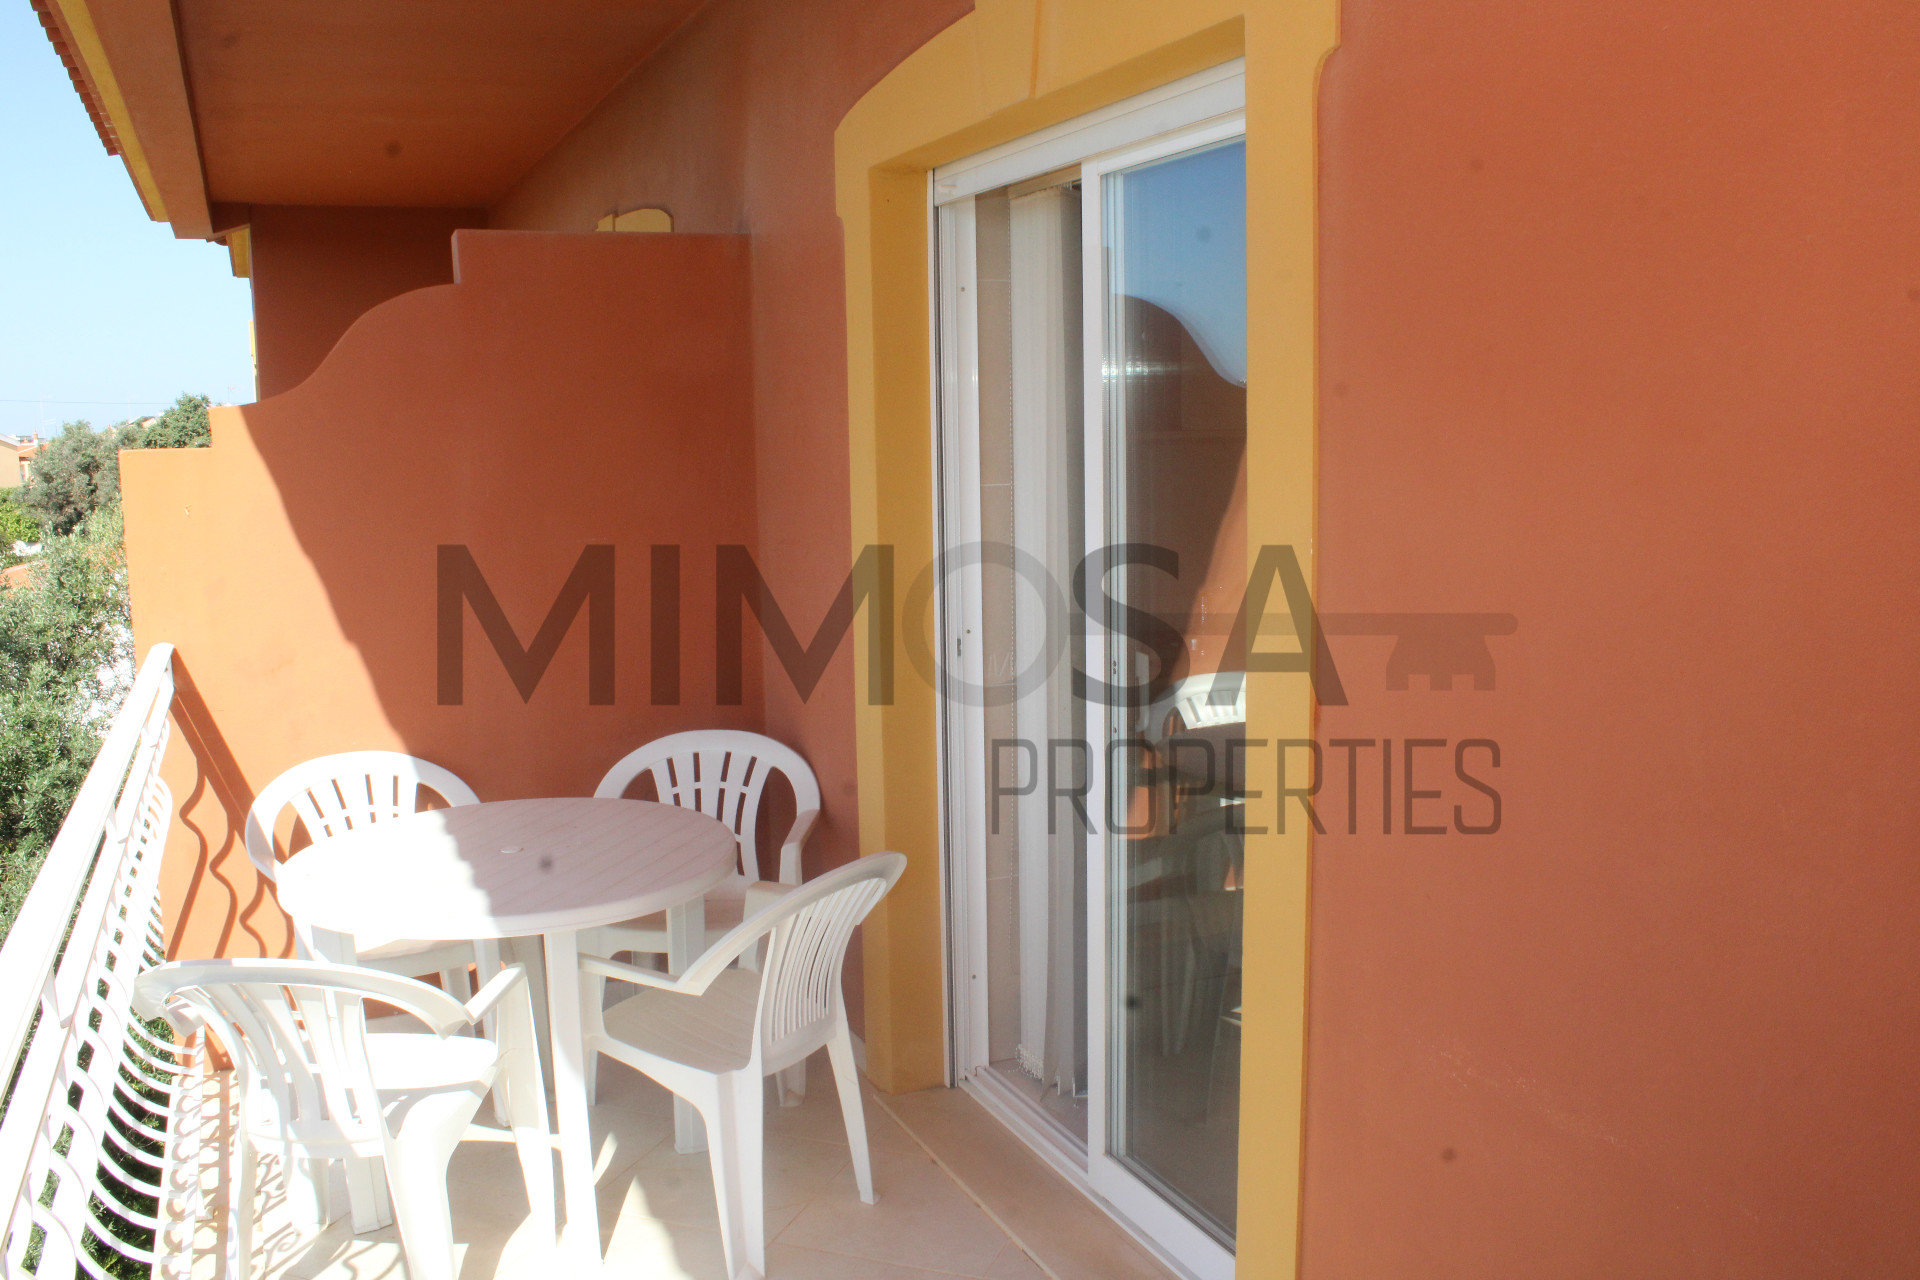 Mimosaproperties - Imobiliária / Real Estate / Makelaars